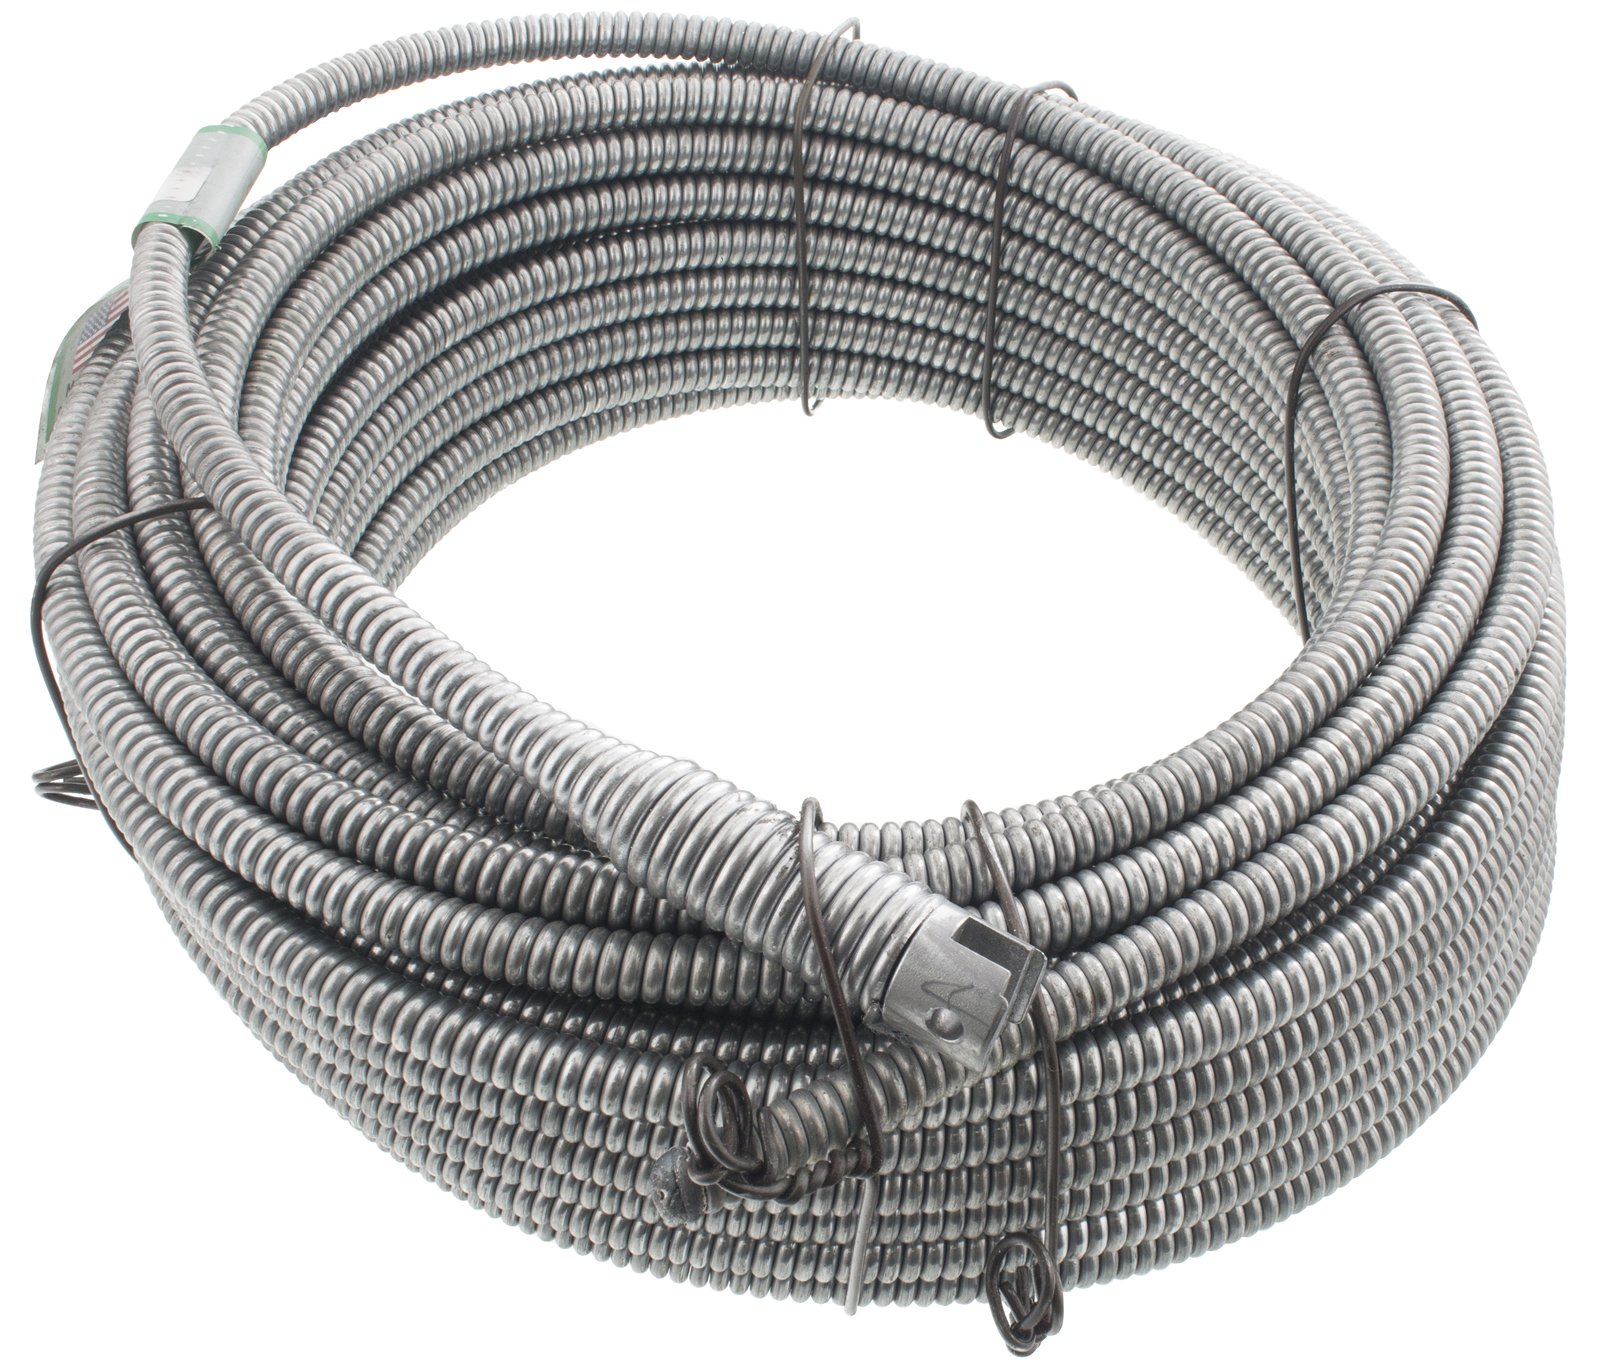 Spartan Tool 13/32'' x 75' Inner Core SparShine No. 8 Drain Snake Cleaning Cable 3448805 by Spartan Tool